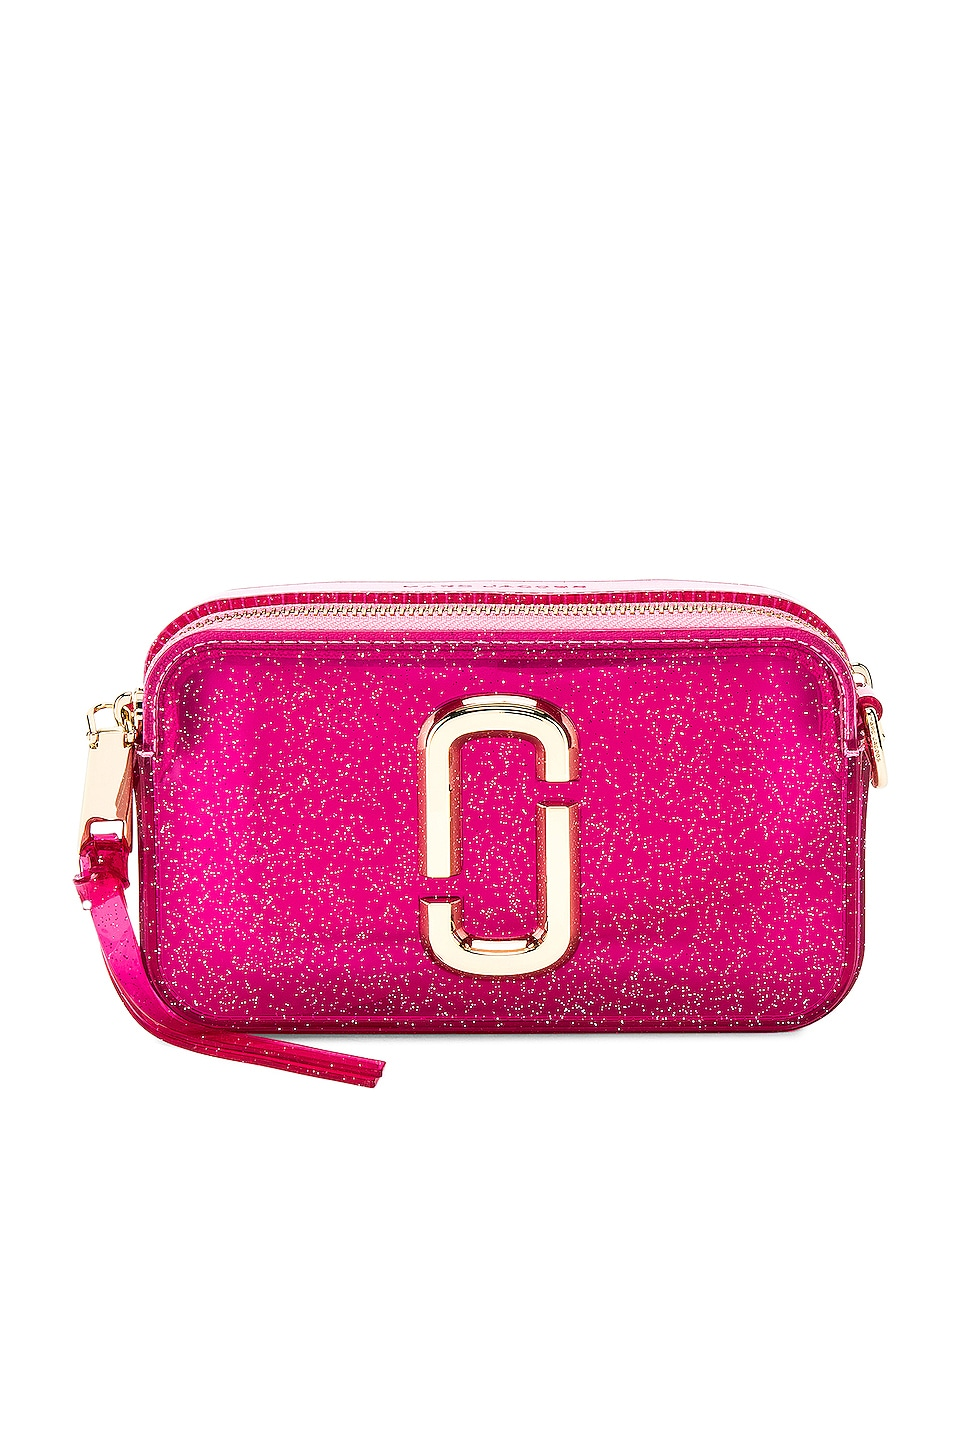 Marc Jacobs The Jelly Glitter Snapshot in Pink Multi